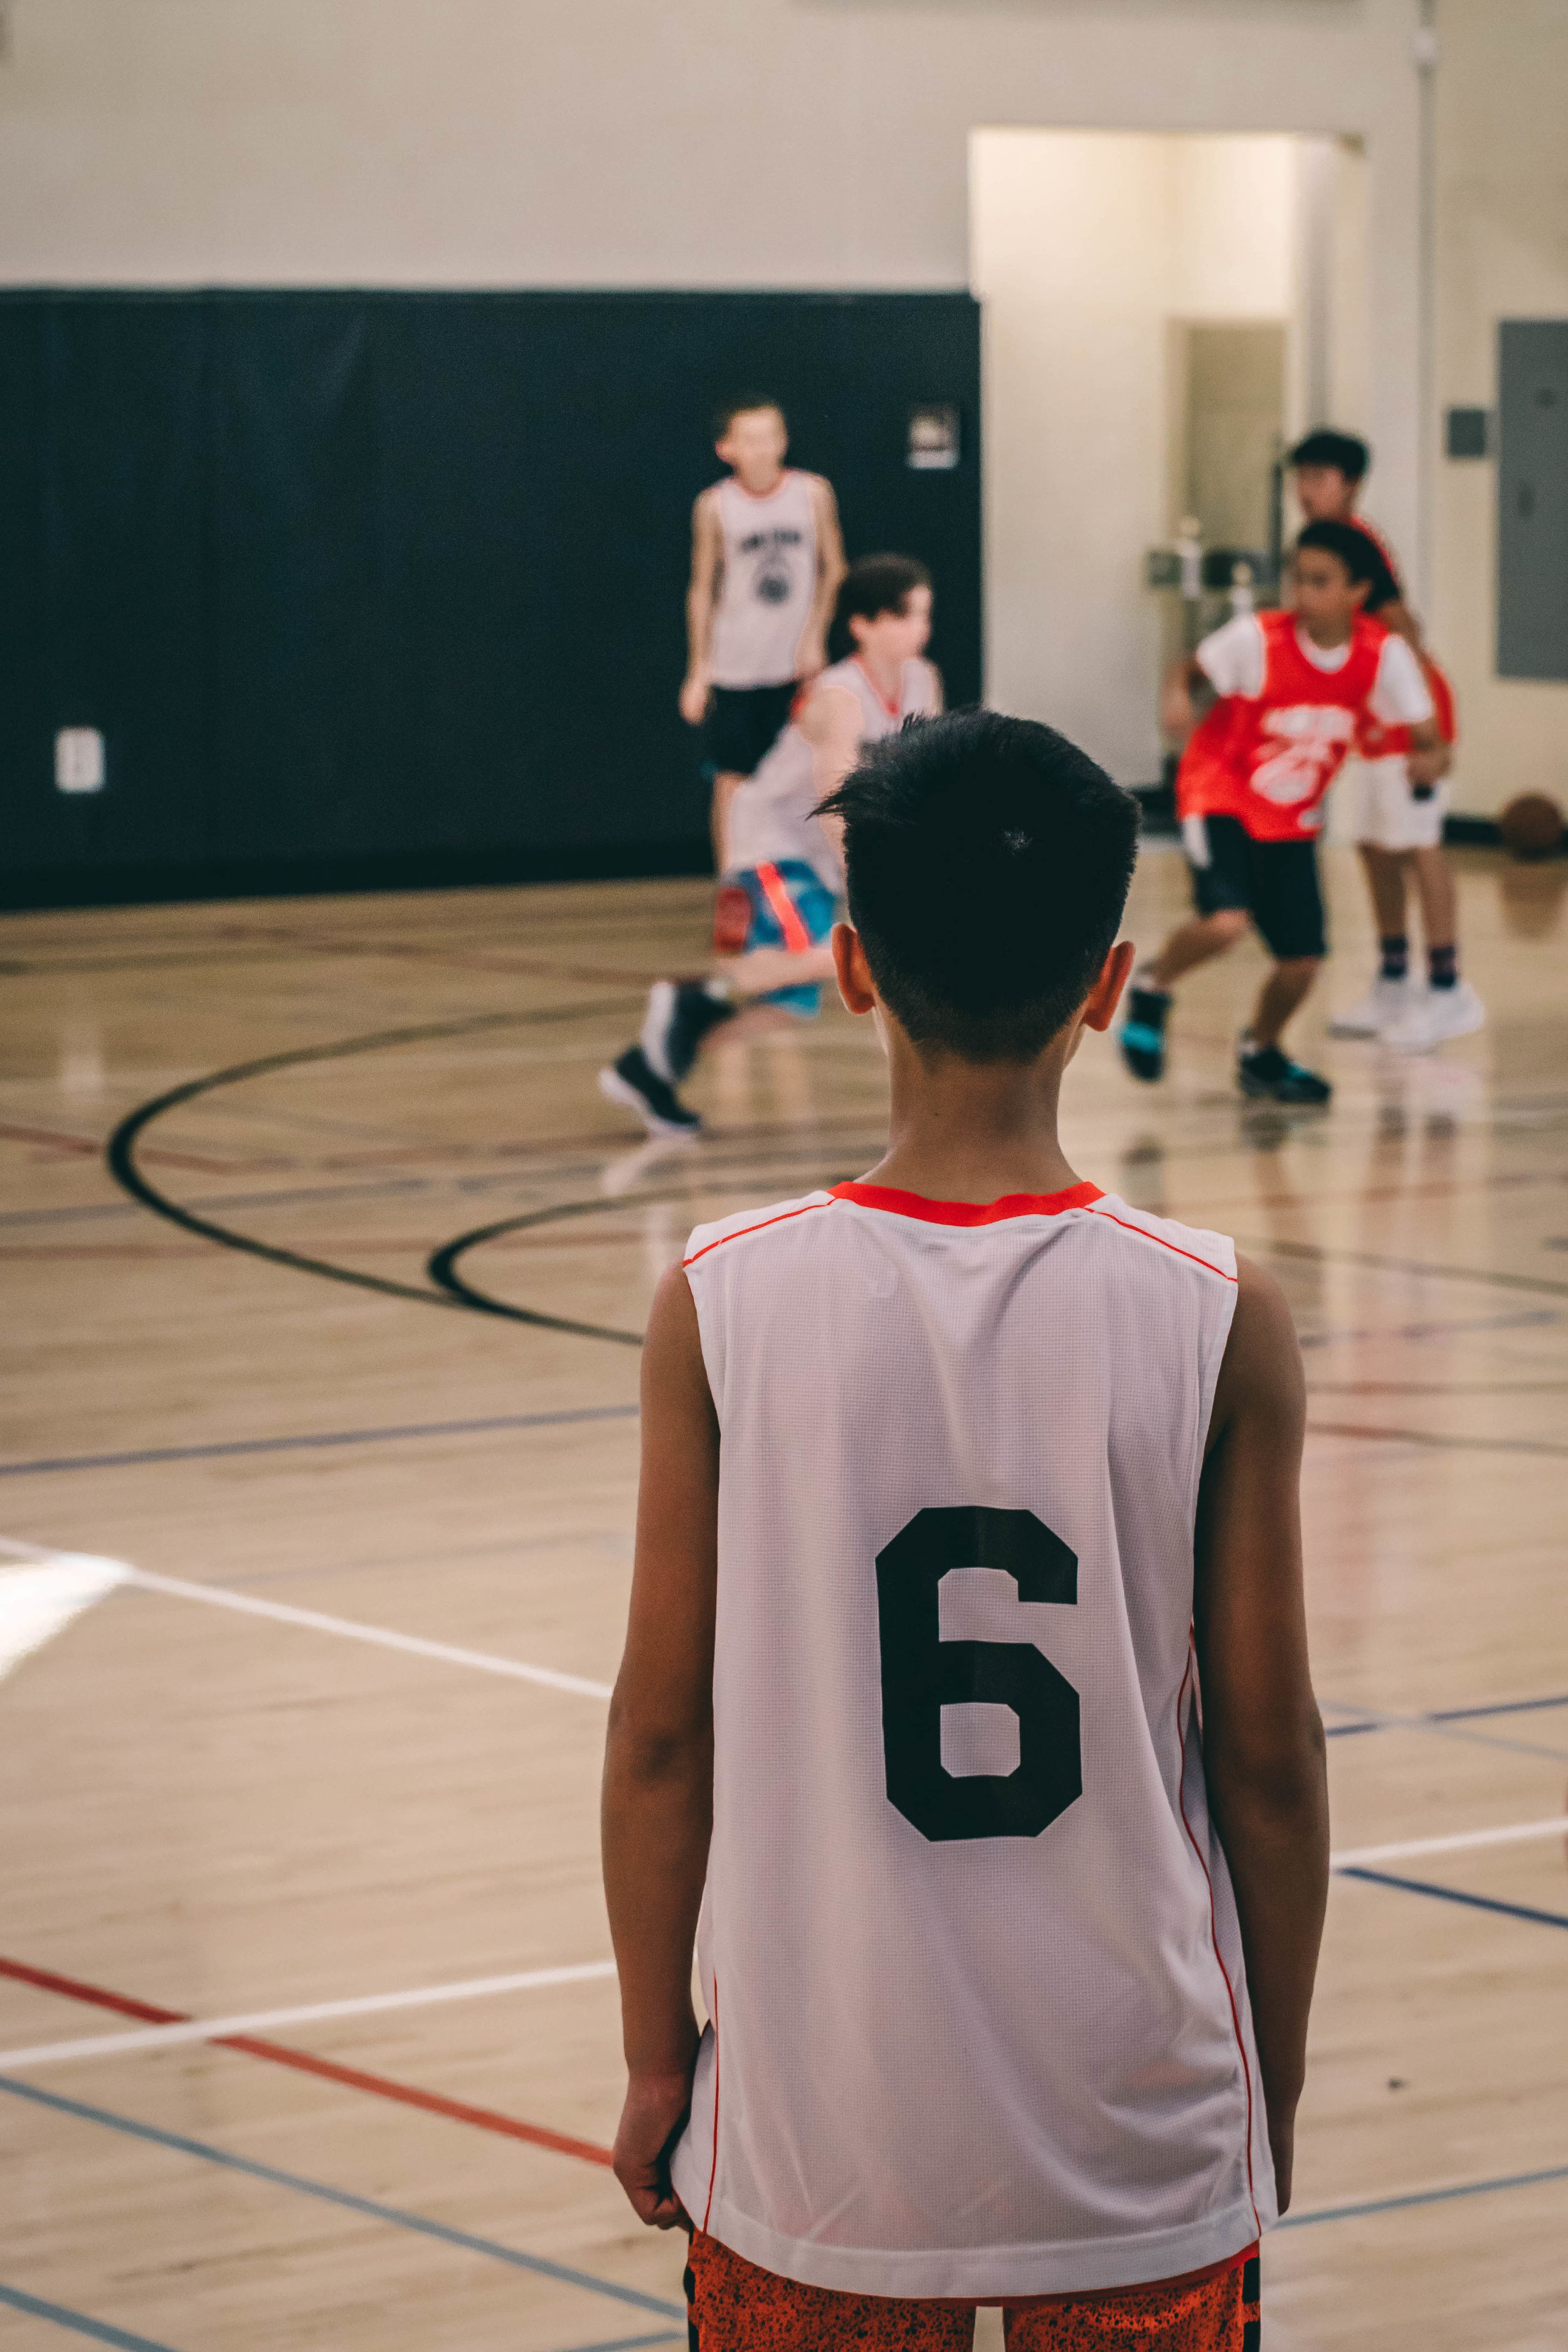 Our practices run on Sundays from 10-12 at the Humberwood Community Centre. - Our program is dedicated to introducing and developing basketball skills for girls and boys from 6-13.The age groups will be separated as follows: 6-8, 9-10, 11-13.